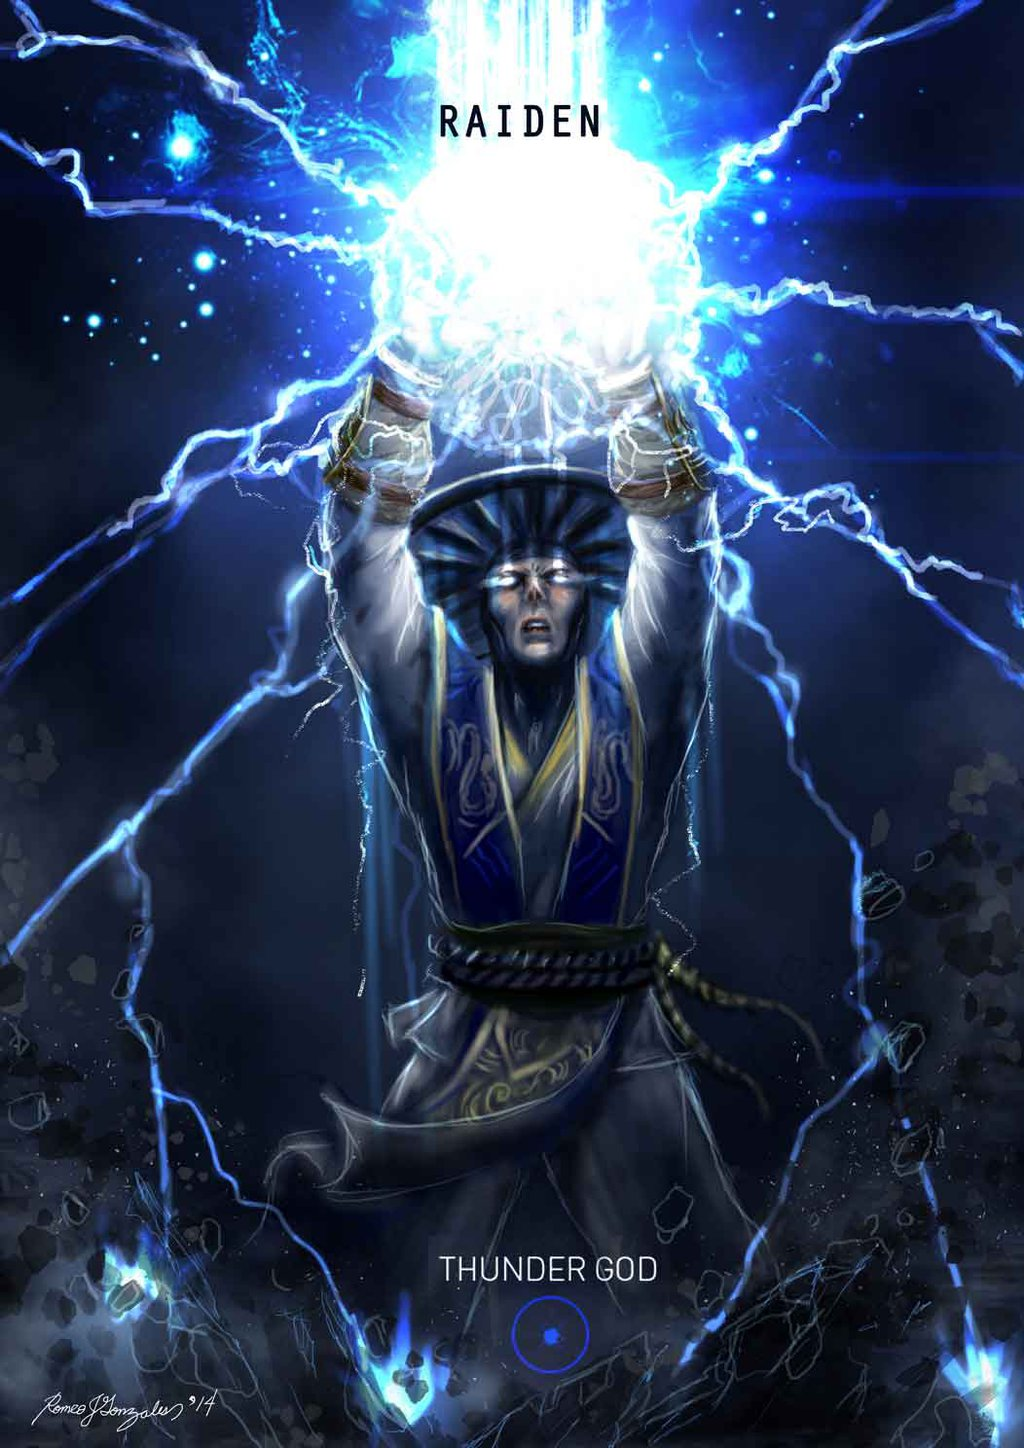 mortal kombat x wallpaper raiden thunder god variation fanart